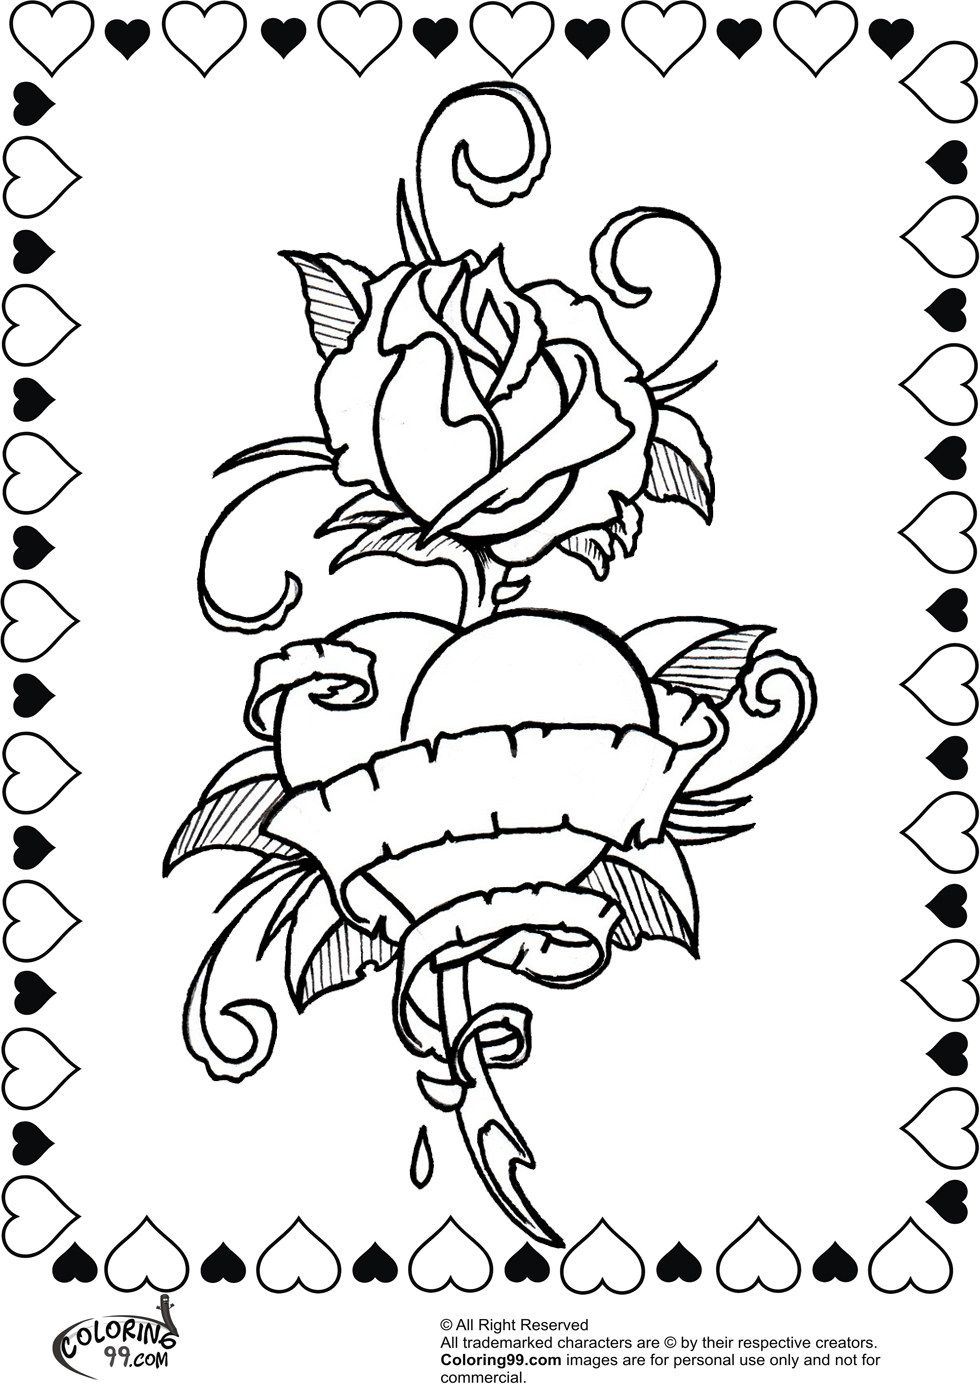 rose heart and ribbon coloring pages for valentine